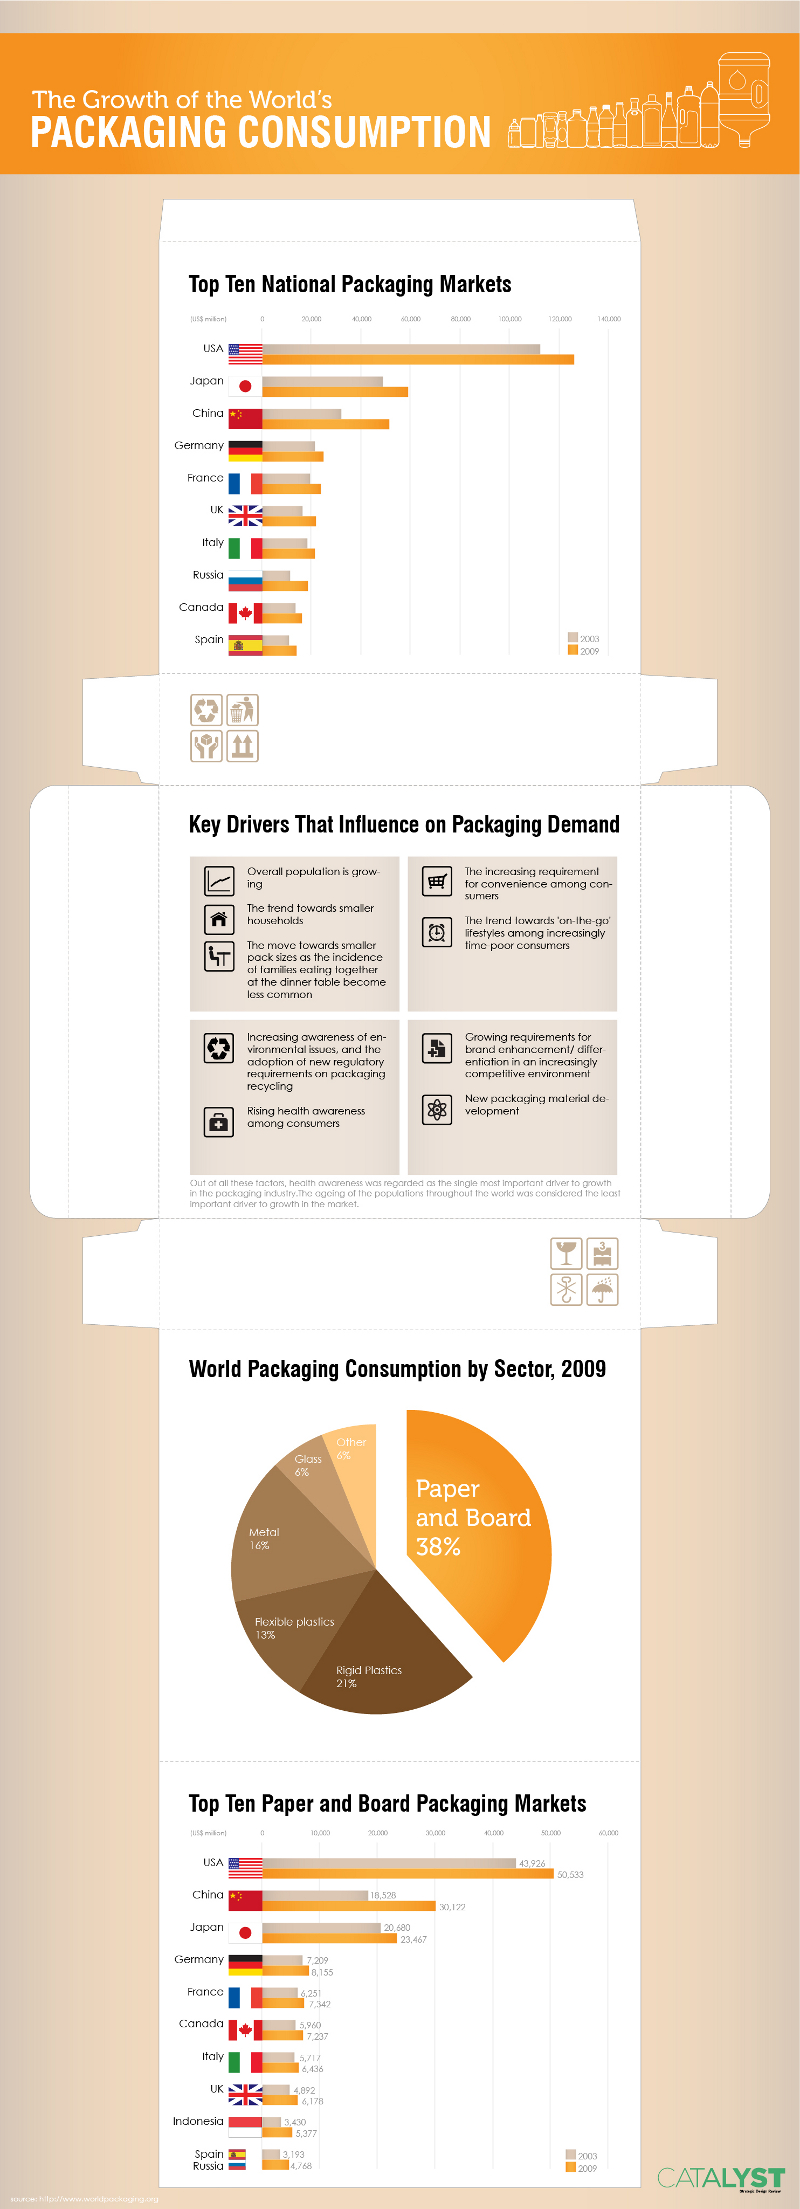 Global Packaging Industry Growth Statistics and Trends